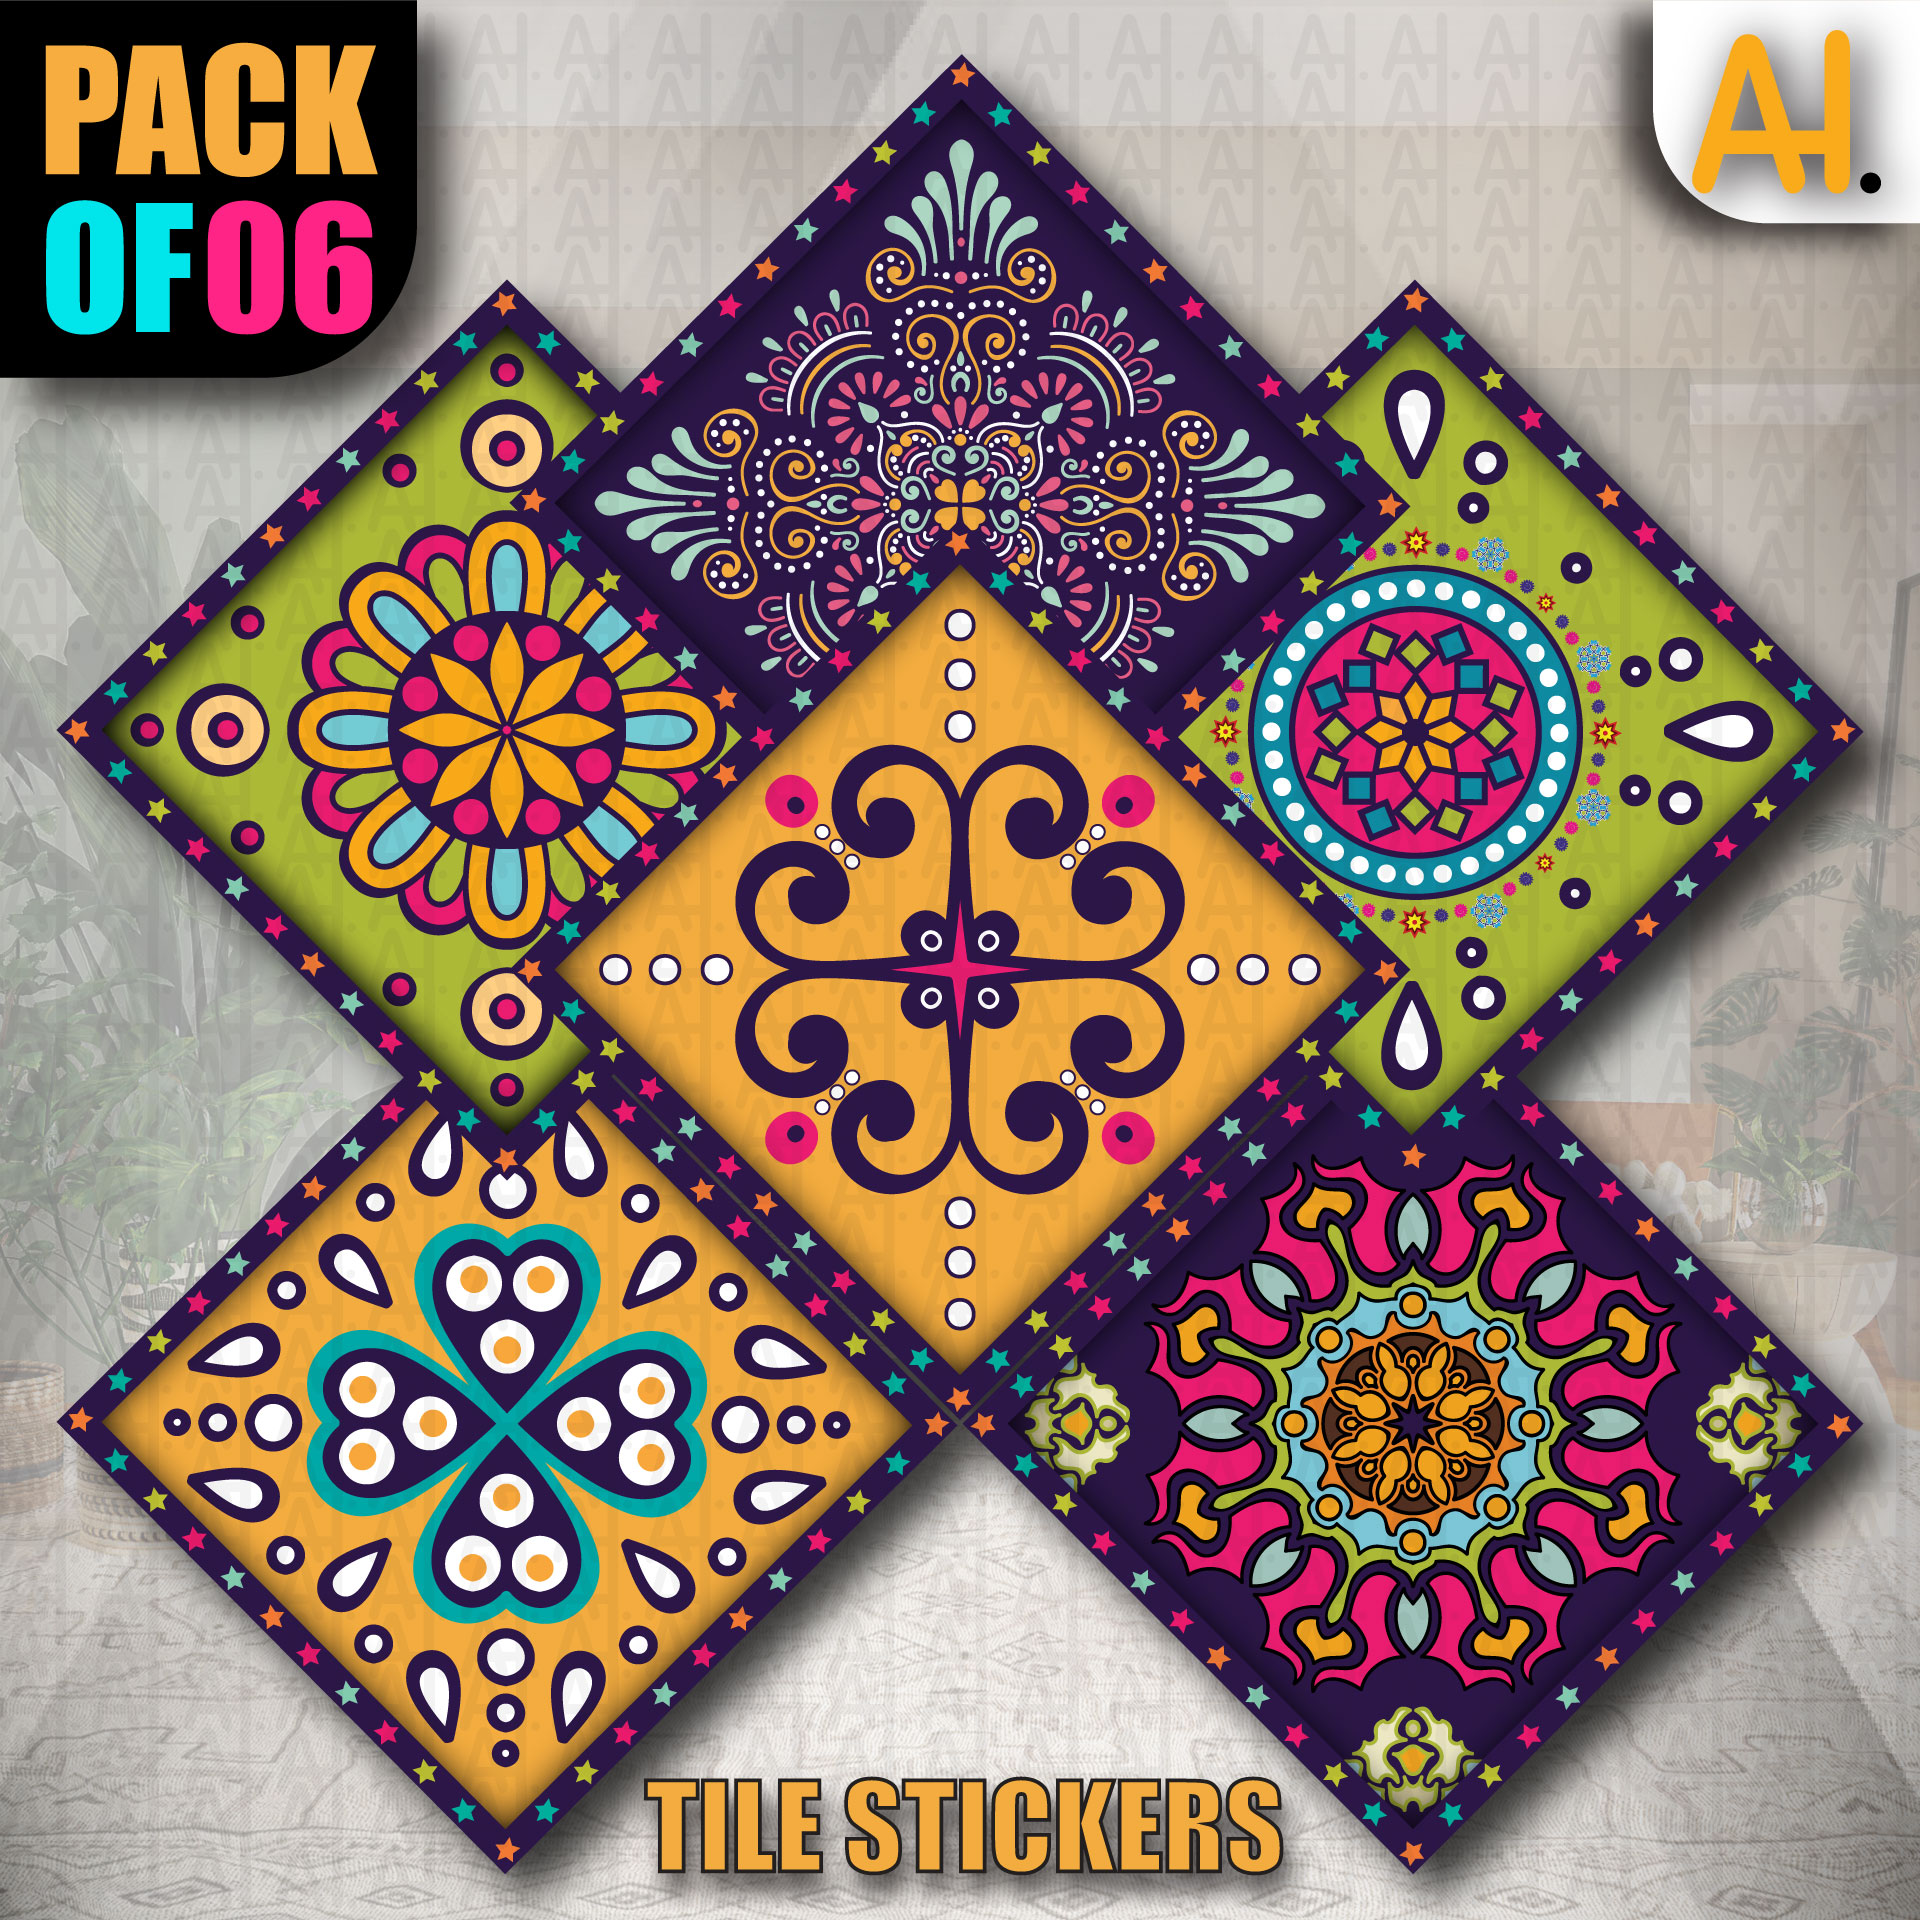 Tile Stickers Pack of 12 Pieces Colorful Textured Stickers for Home Decor Self Adhesive Wall Tile Sticker 4.8in by 4.8in (12 Pieces)